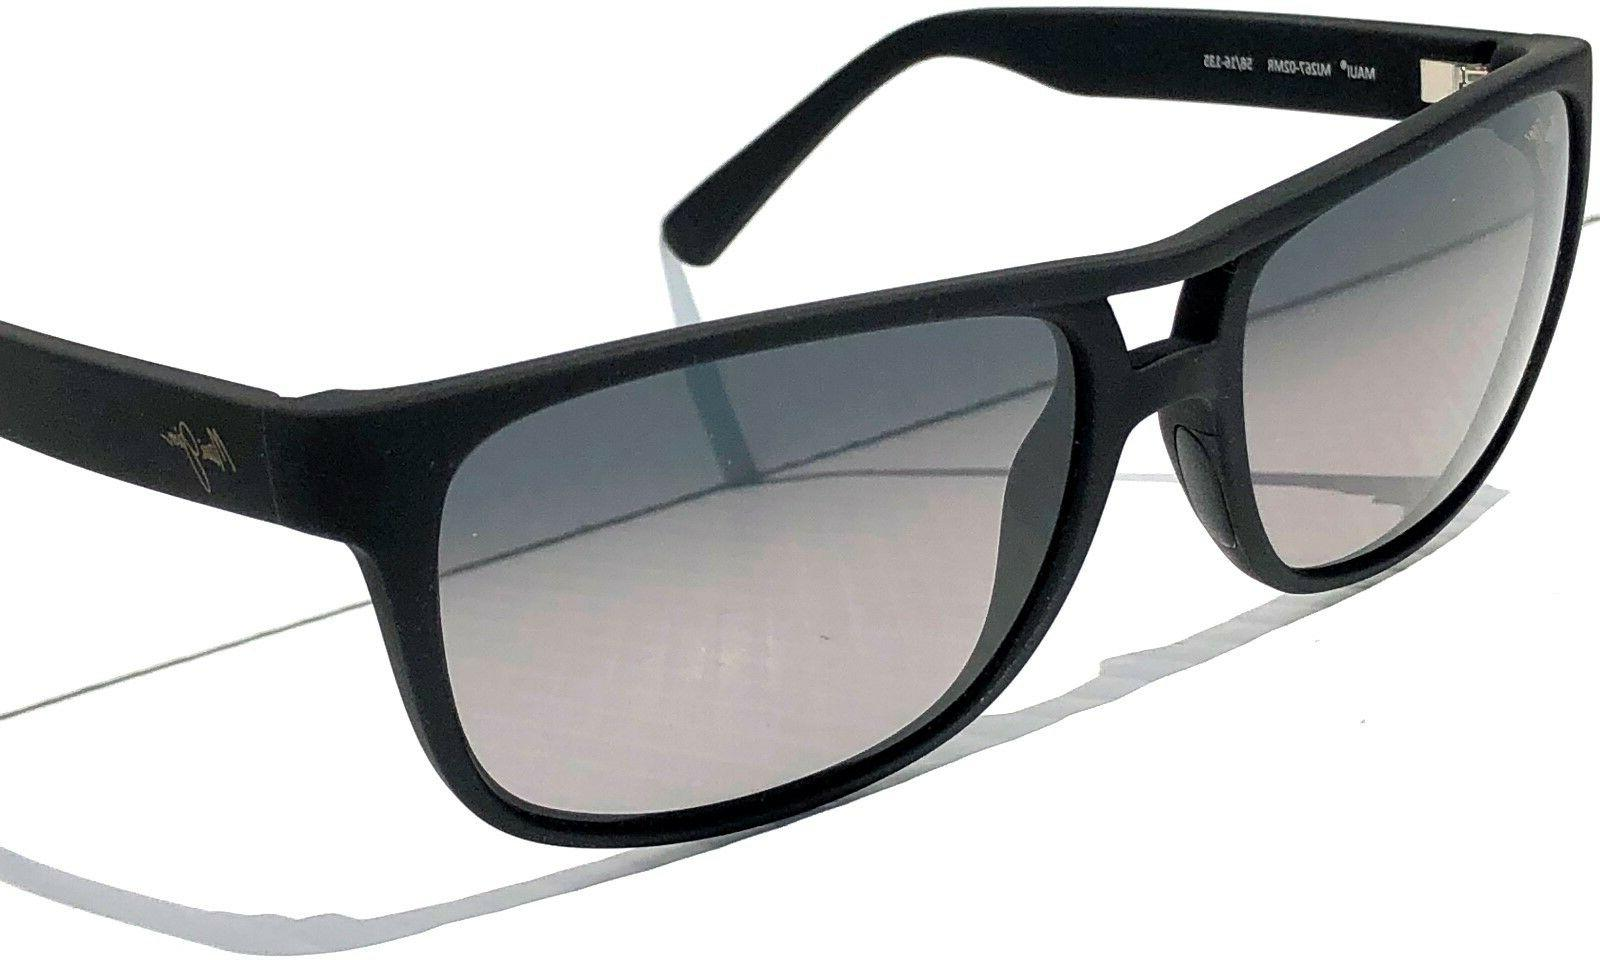 NEW* Maui Jim Waterways Black Grey Lens Sunglass